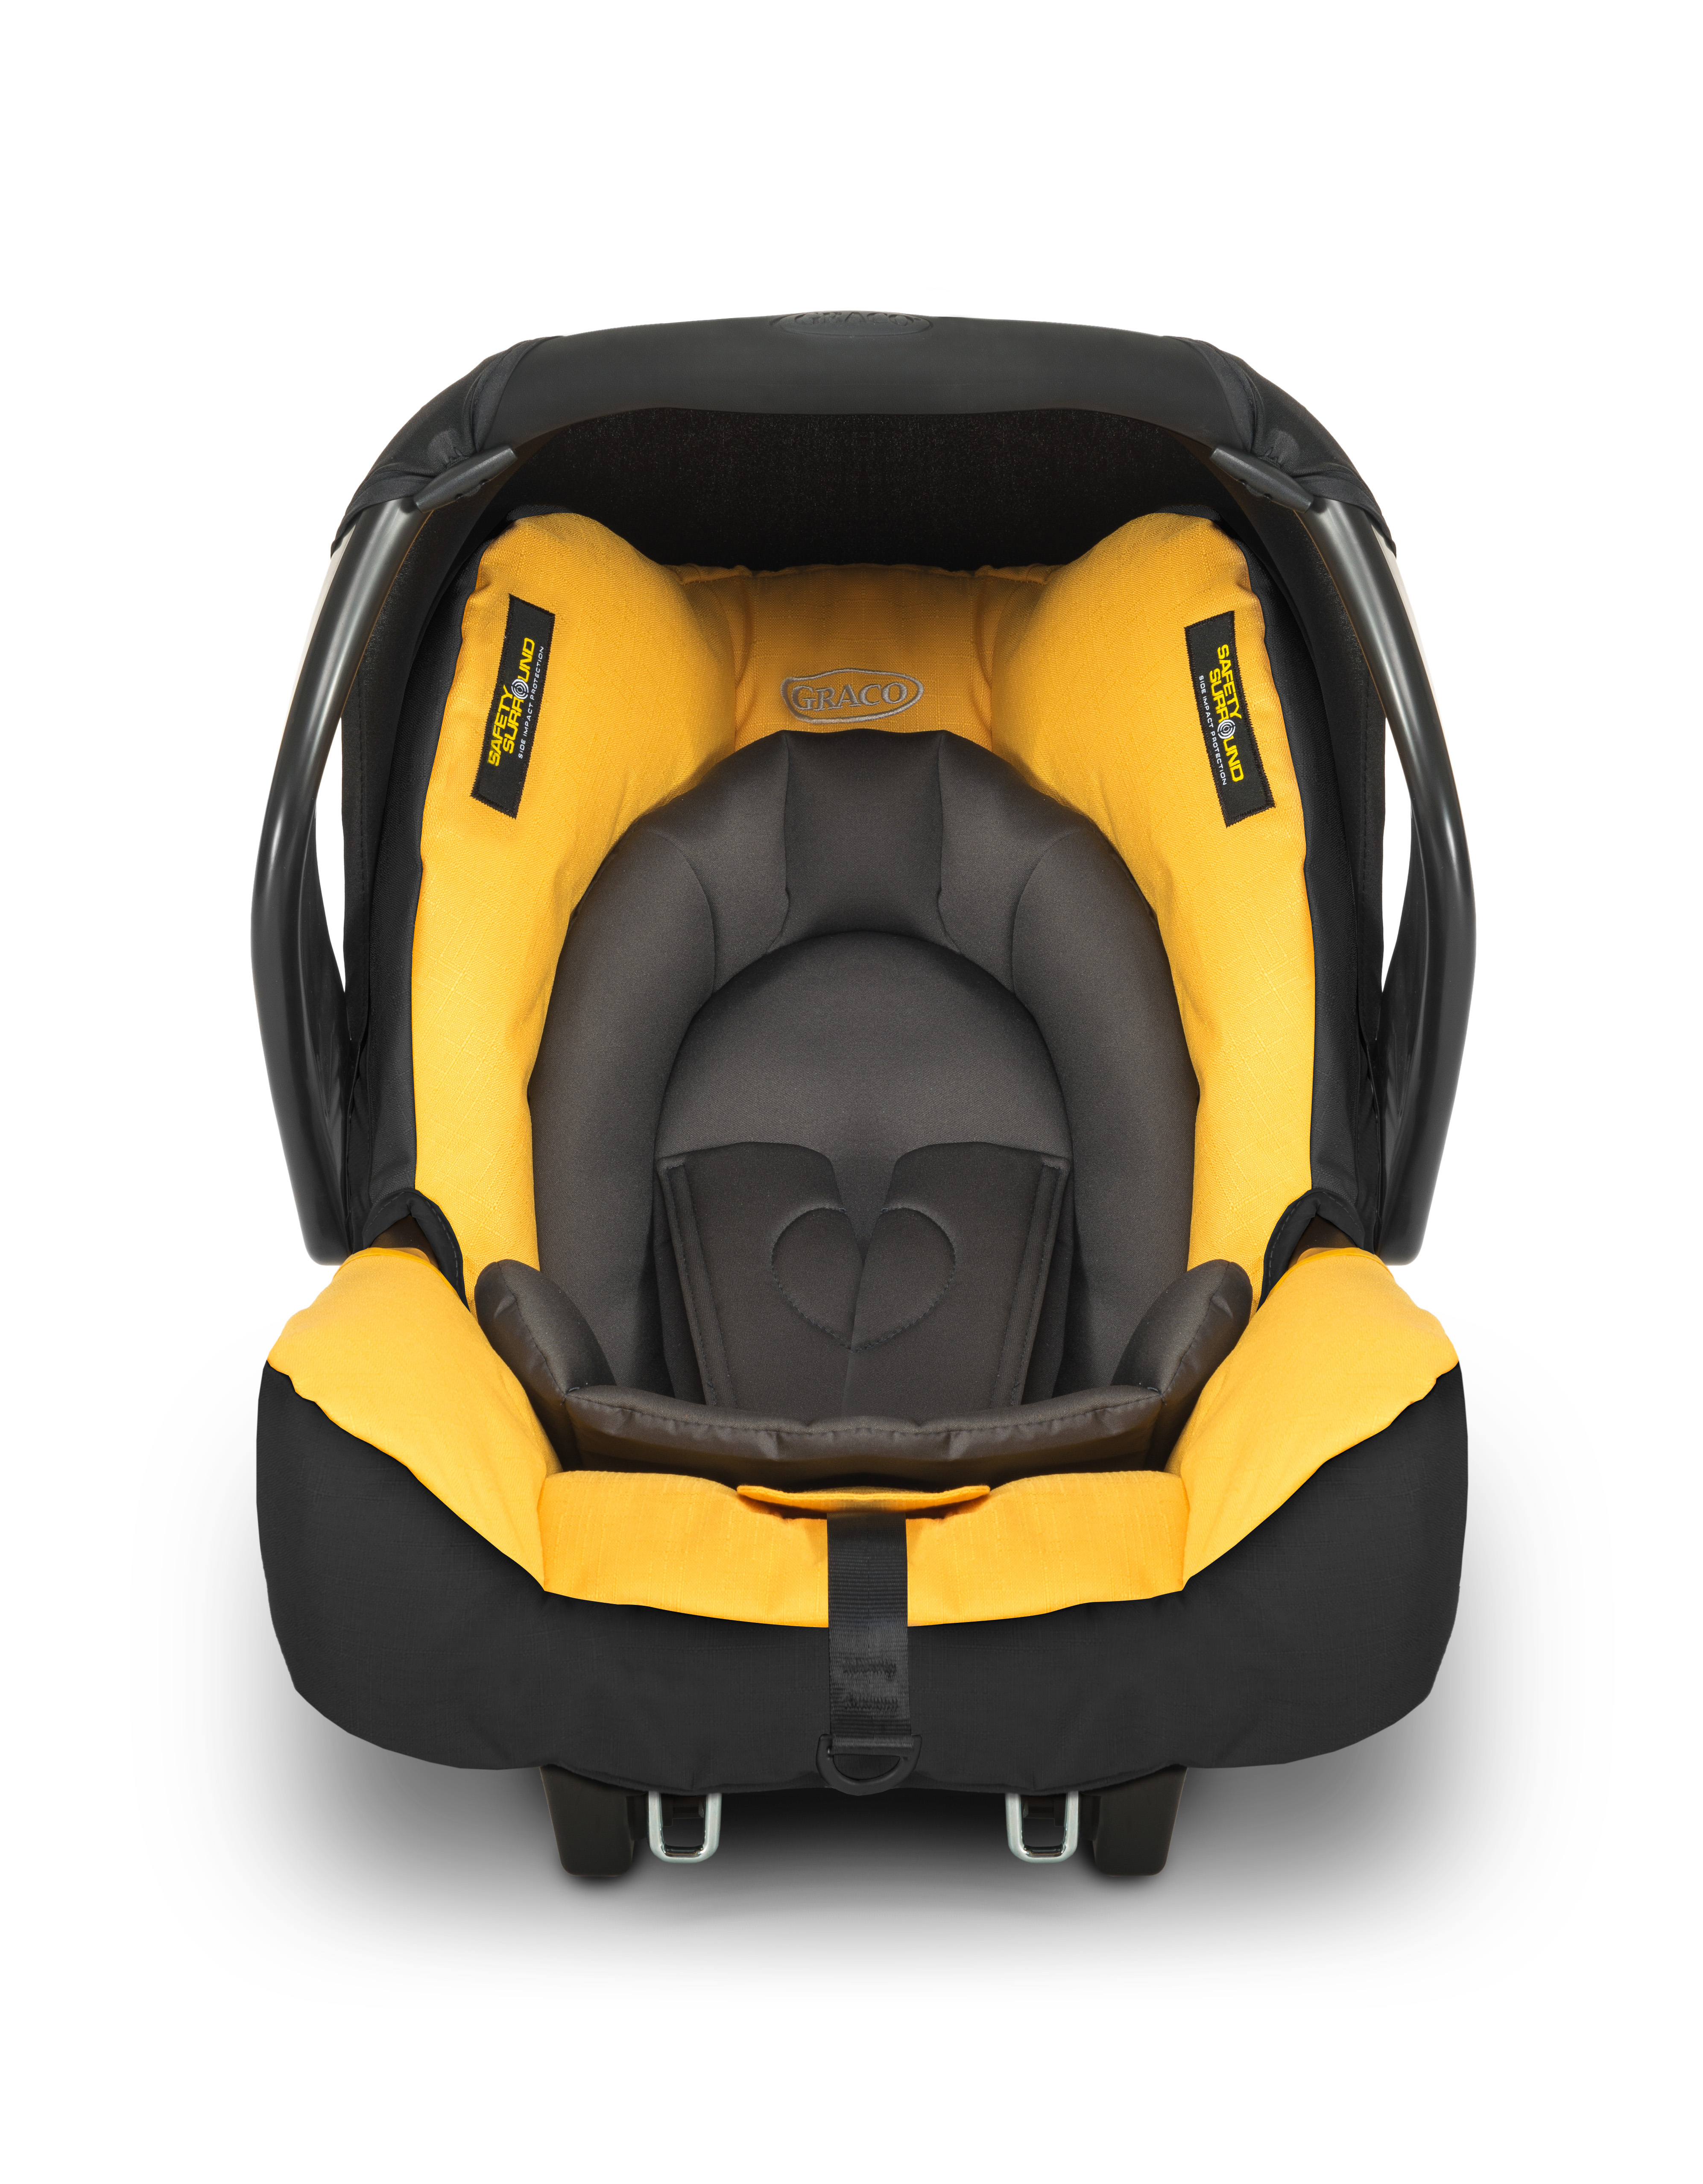 Mothercare | Graco Evo Yellow Snugsafe Baby Car Seat Mineral Yellow